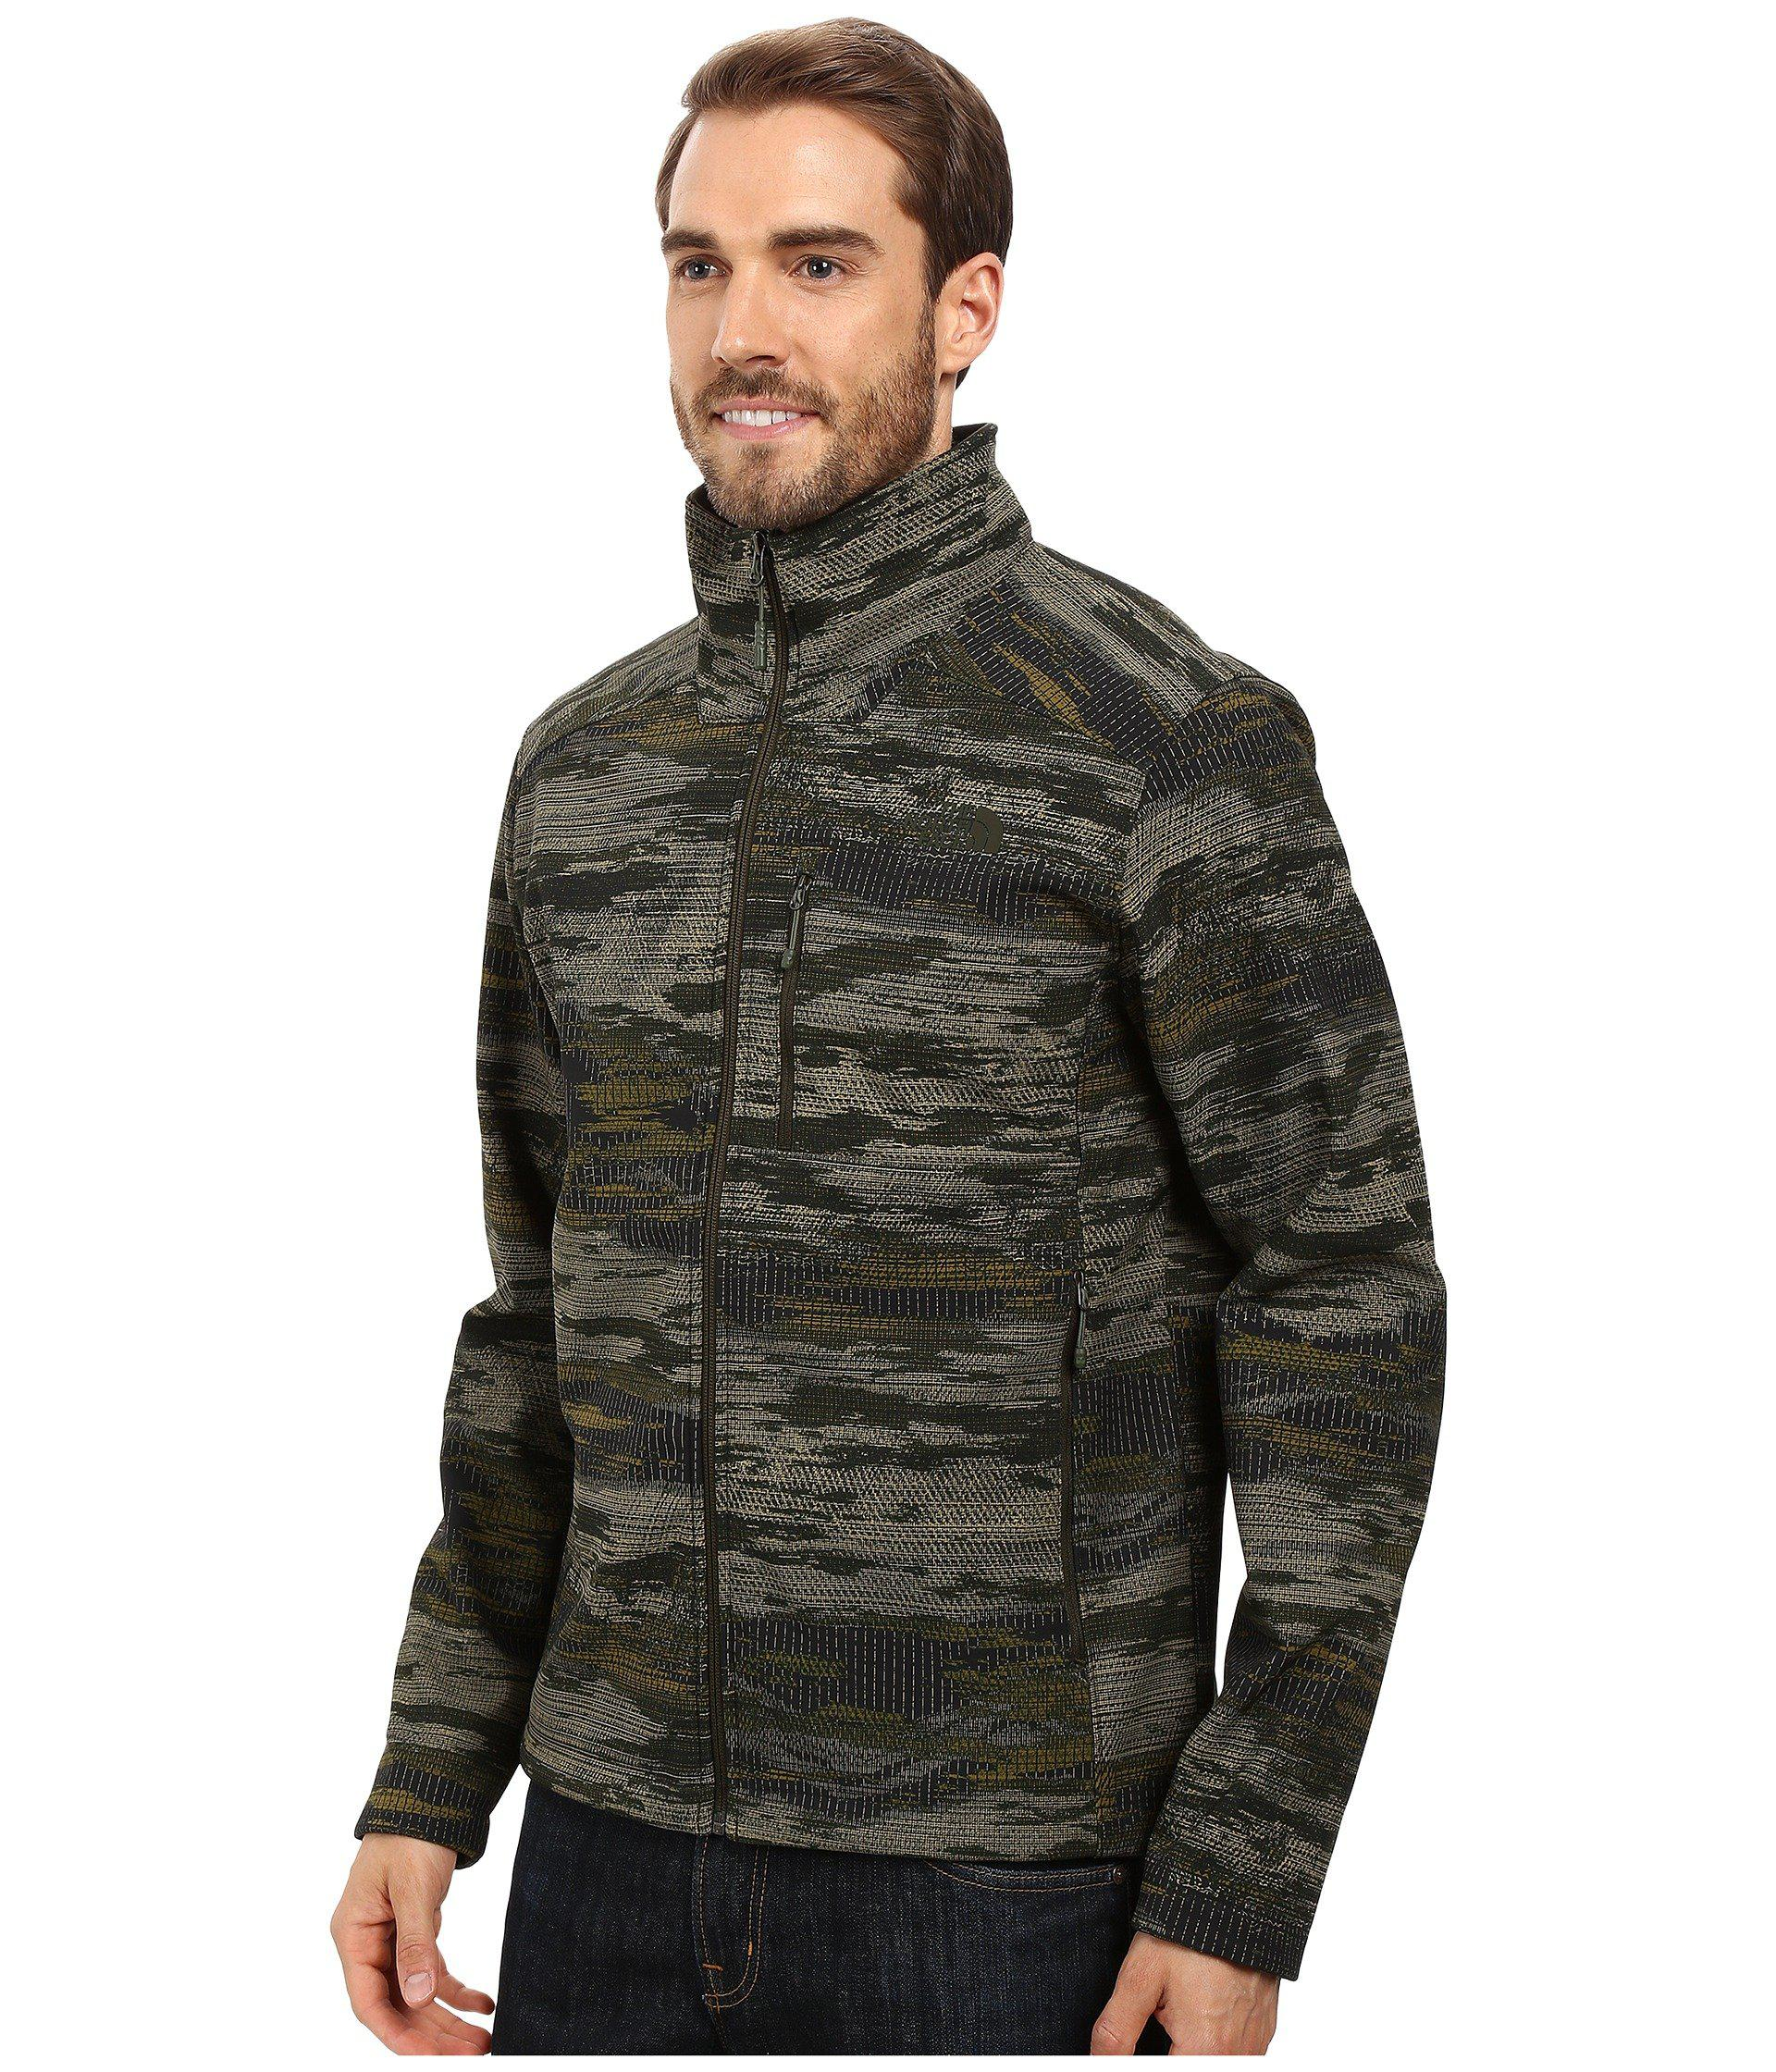 345a0ec24e89 Lyst - The North Face Apex Bionic 2 Jacket in Green for Men